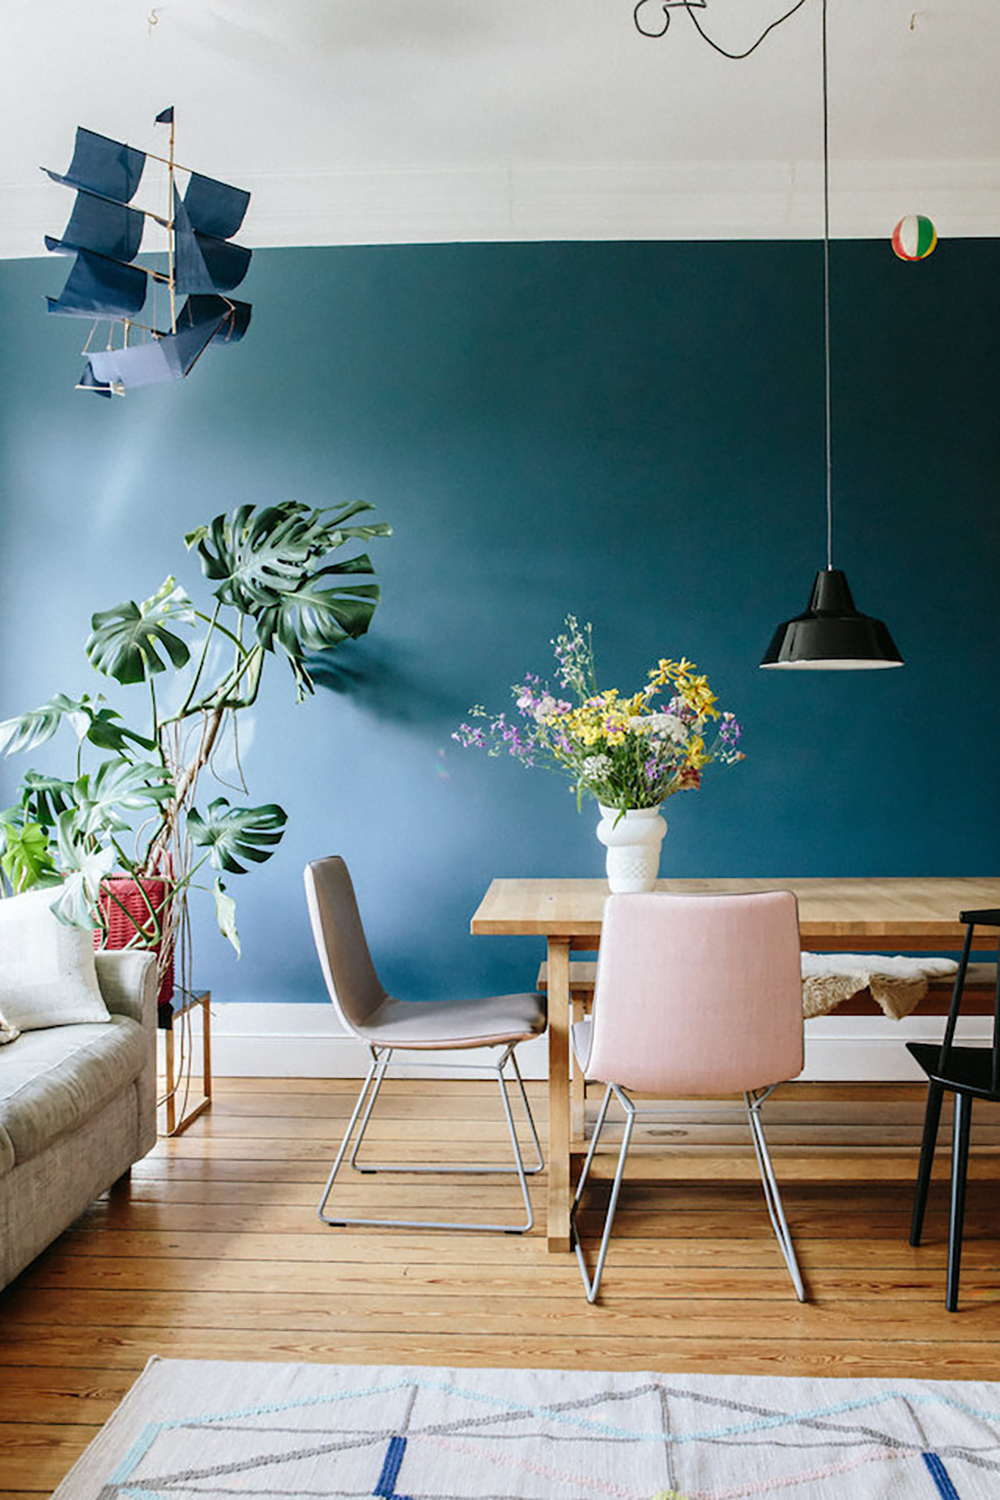 Mid Blue Shade In The Living Room Is Very Elegant With The Parquet,  Colourful Accessories